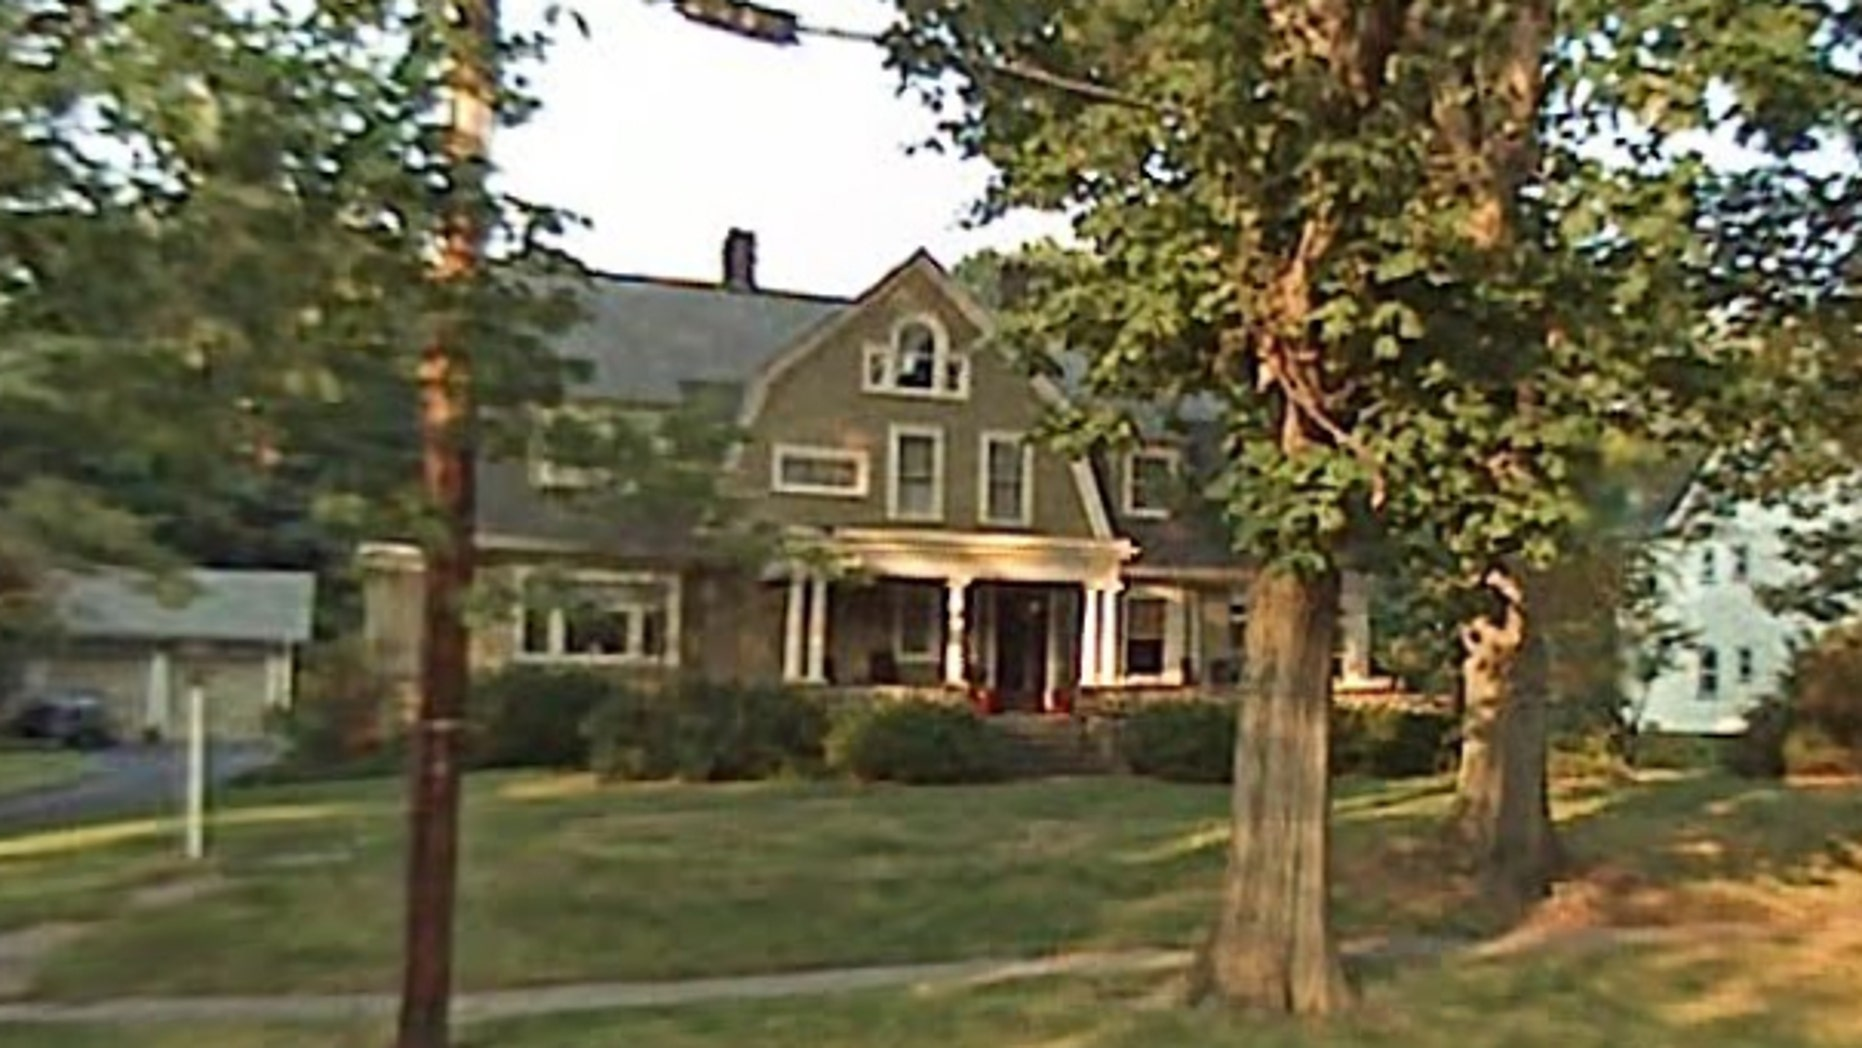 The owners of a house in New Jersey have been receiving mysterious messages.